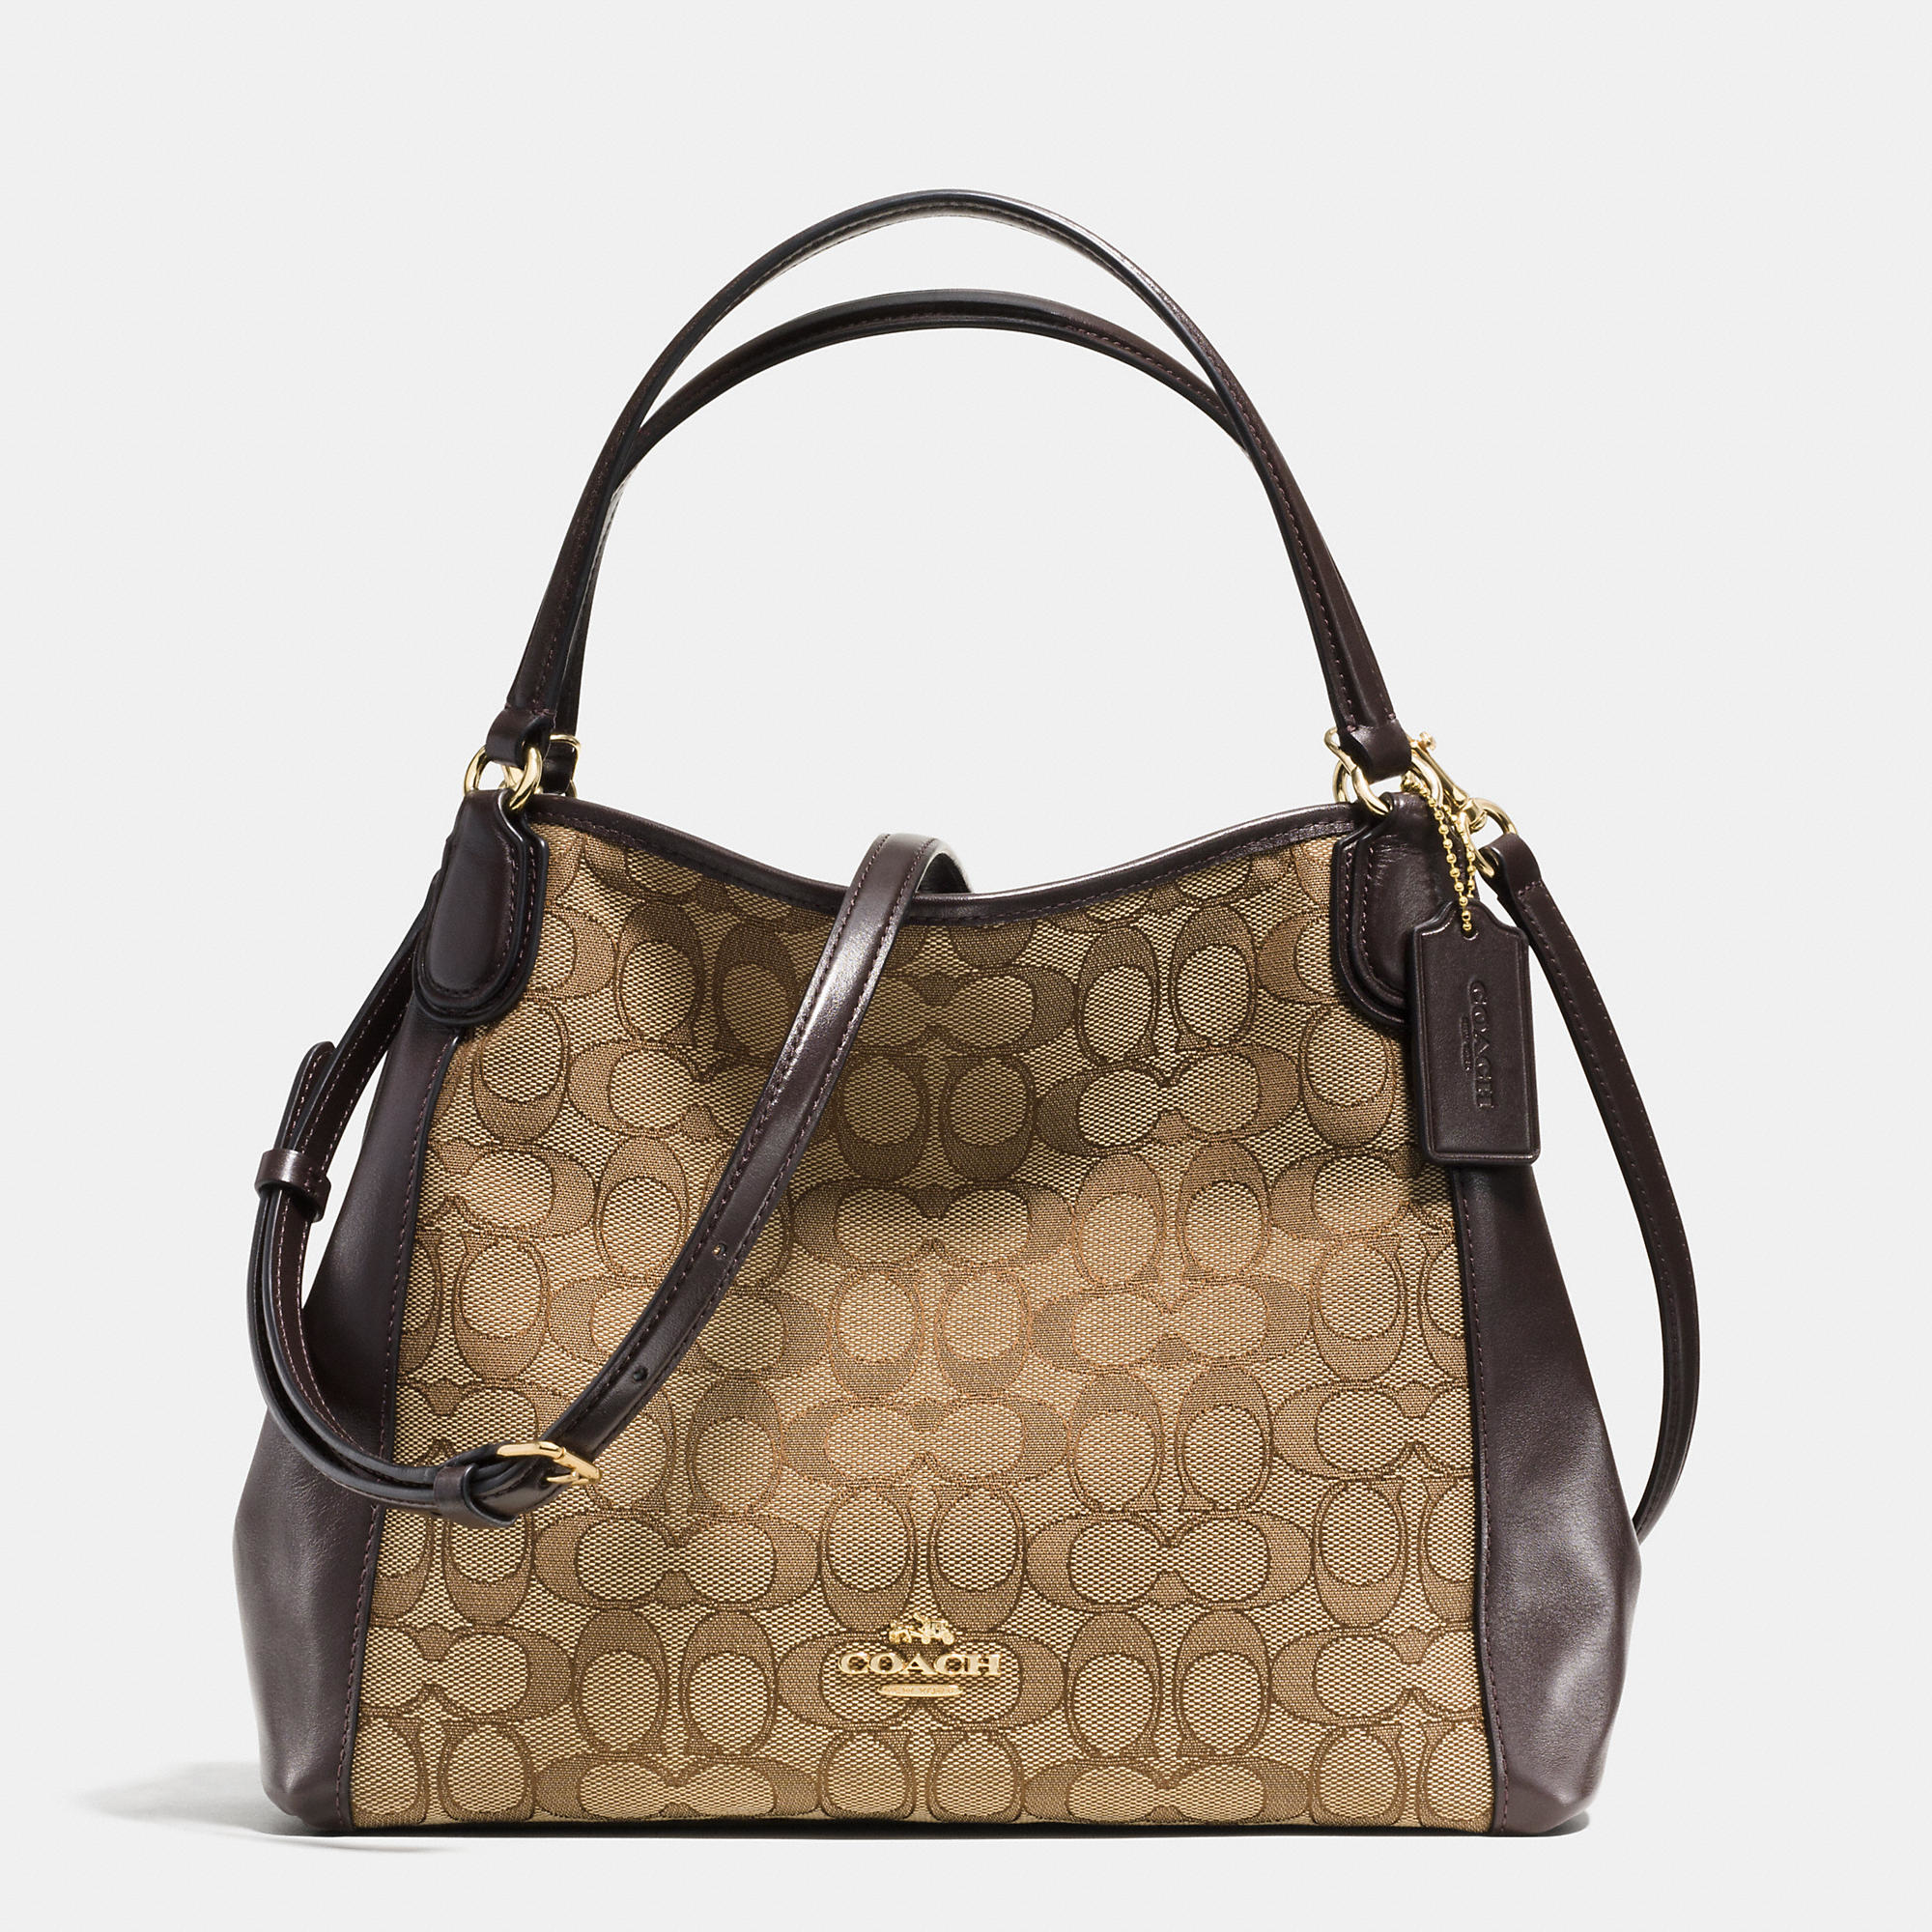 ... netherlands lyst coach edie shoulder bag 28 in signature jacquard in  brown 15119 654c9 e023a1f65755a